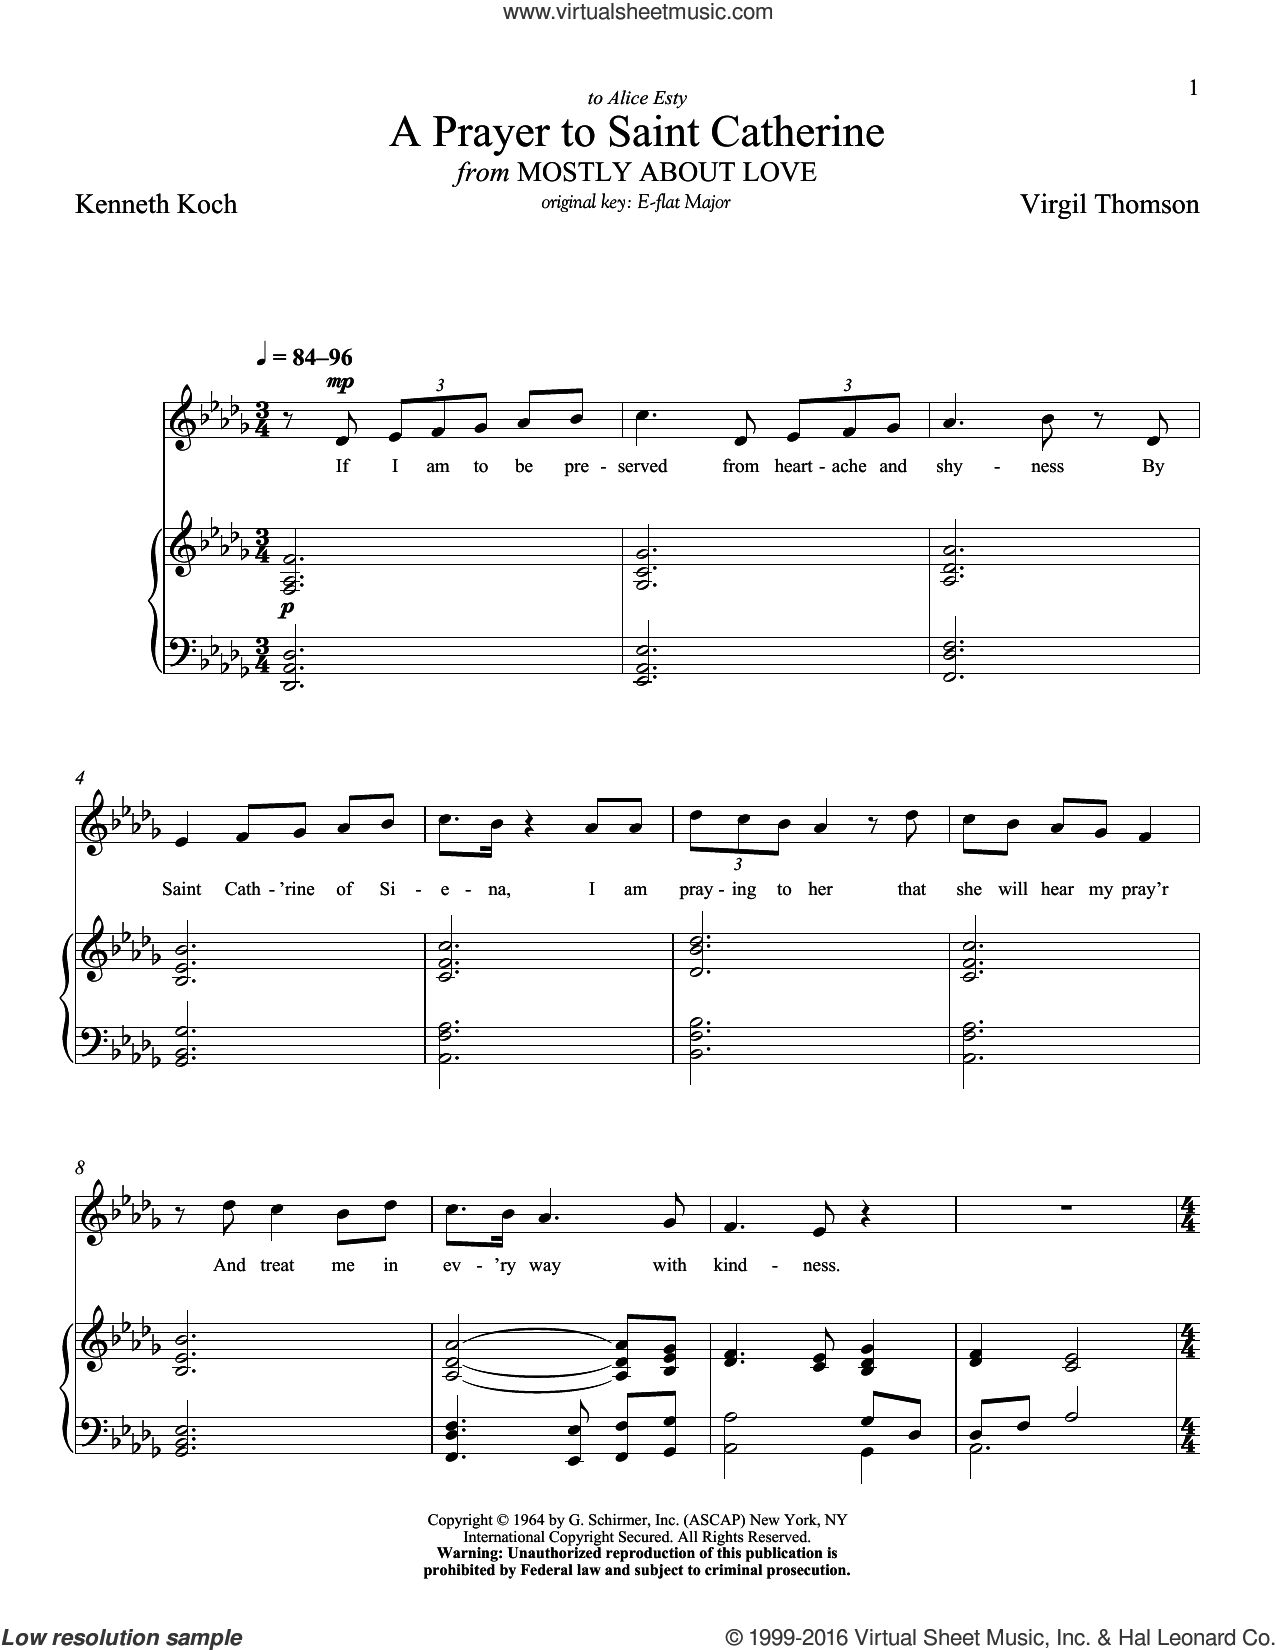 A Prayer To Saint Catherine sheet music for voice and piano (Low ) by Kenneth Koch, Richard Walters and Virgil Thomson. Score Image Preview.